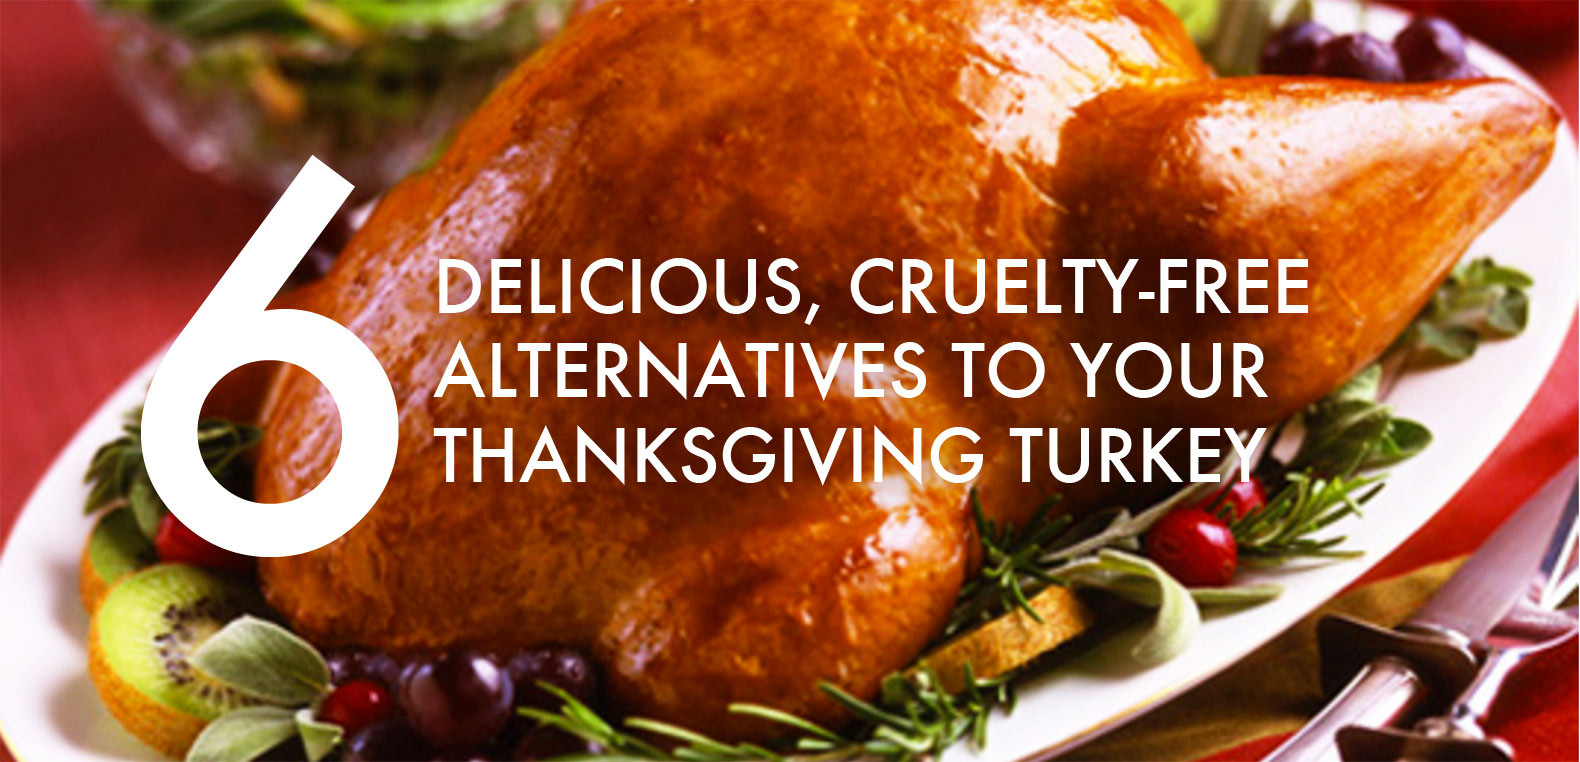 Alternatives To Turkey On Thanksgiving  6 Vegan and ve arian turkey alternatives for